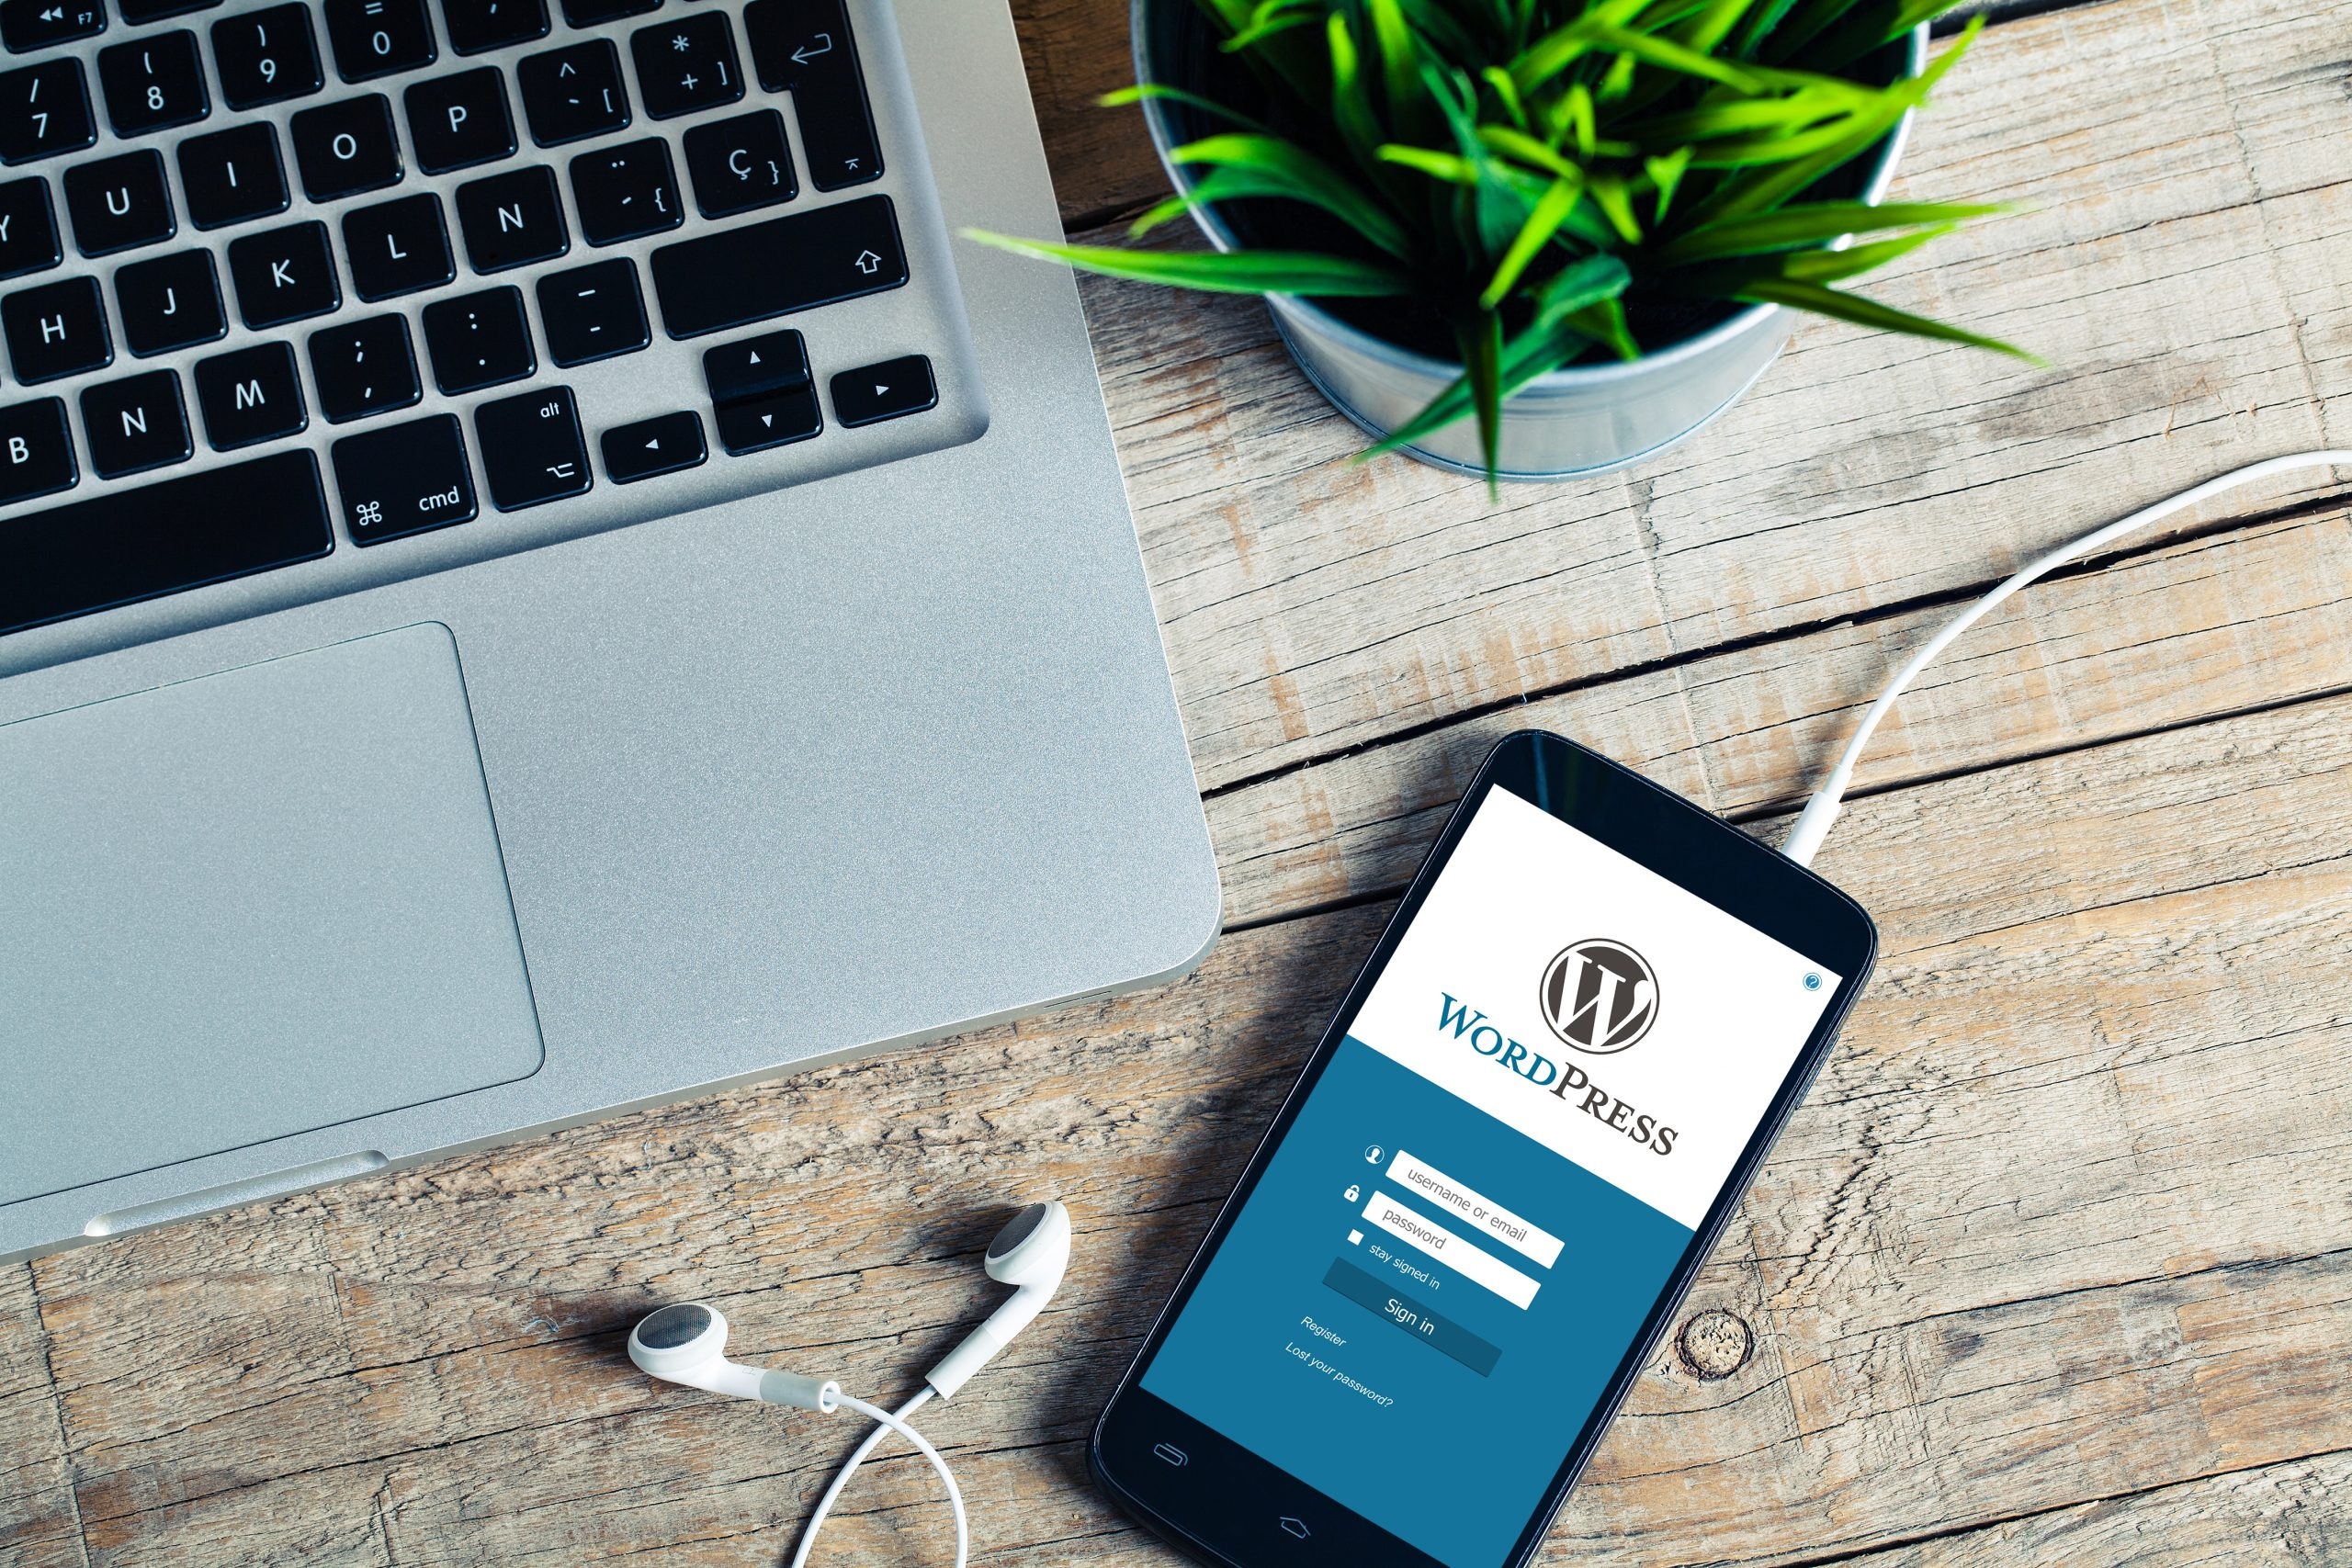 Image of a laptop, plant and a mobile phone with Wordpress on the screen.